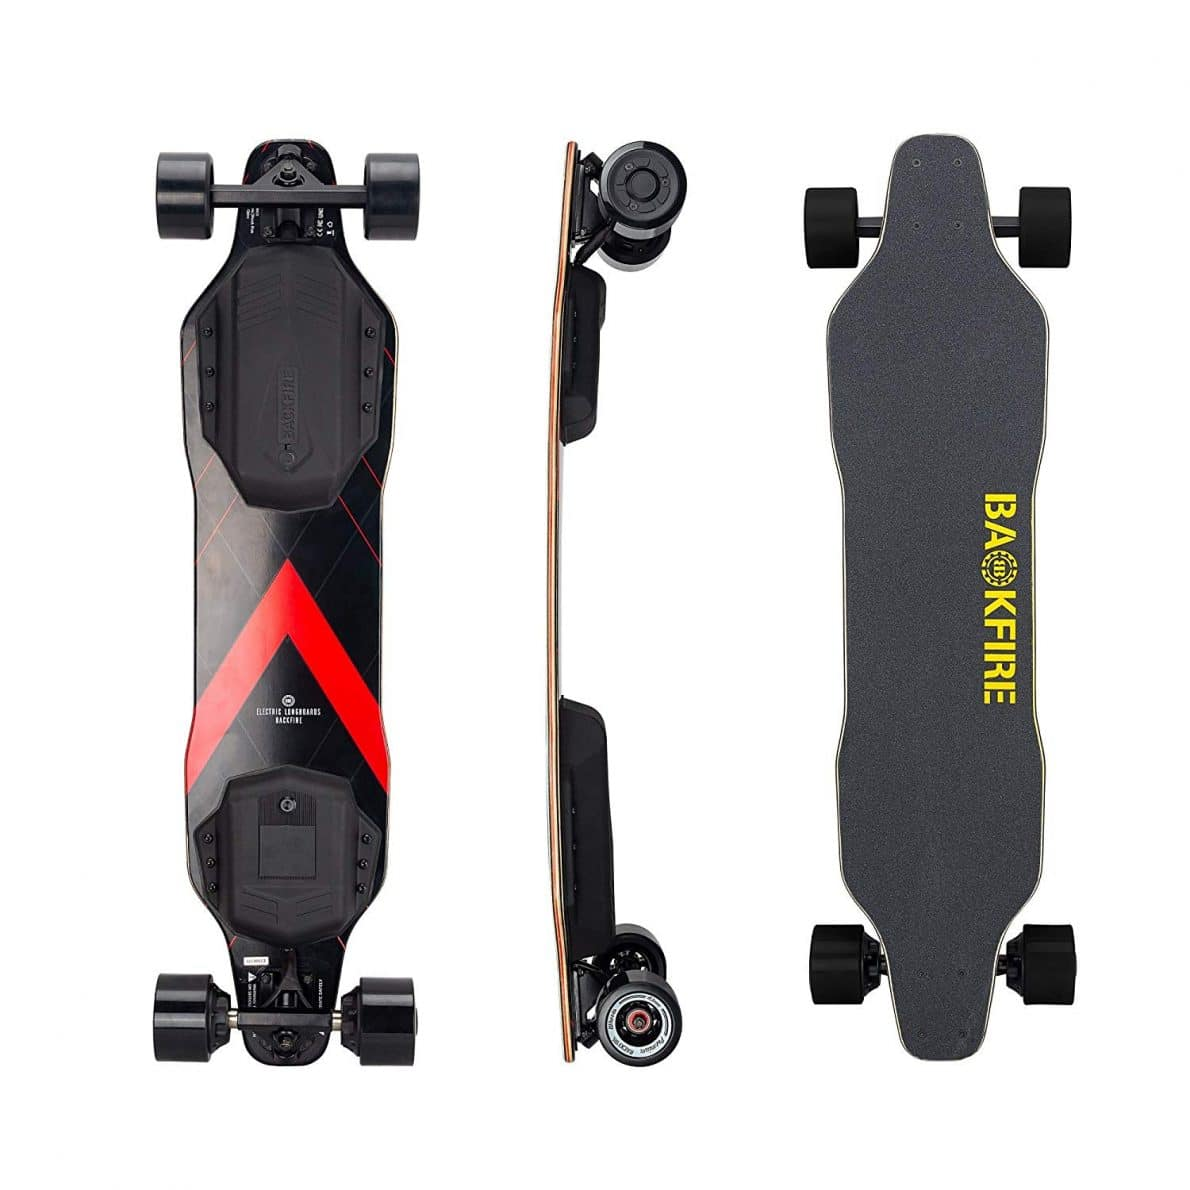 Backfire G2 Electric Skateboard Review Budget Friendly Board